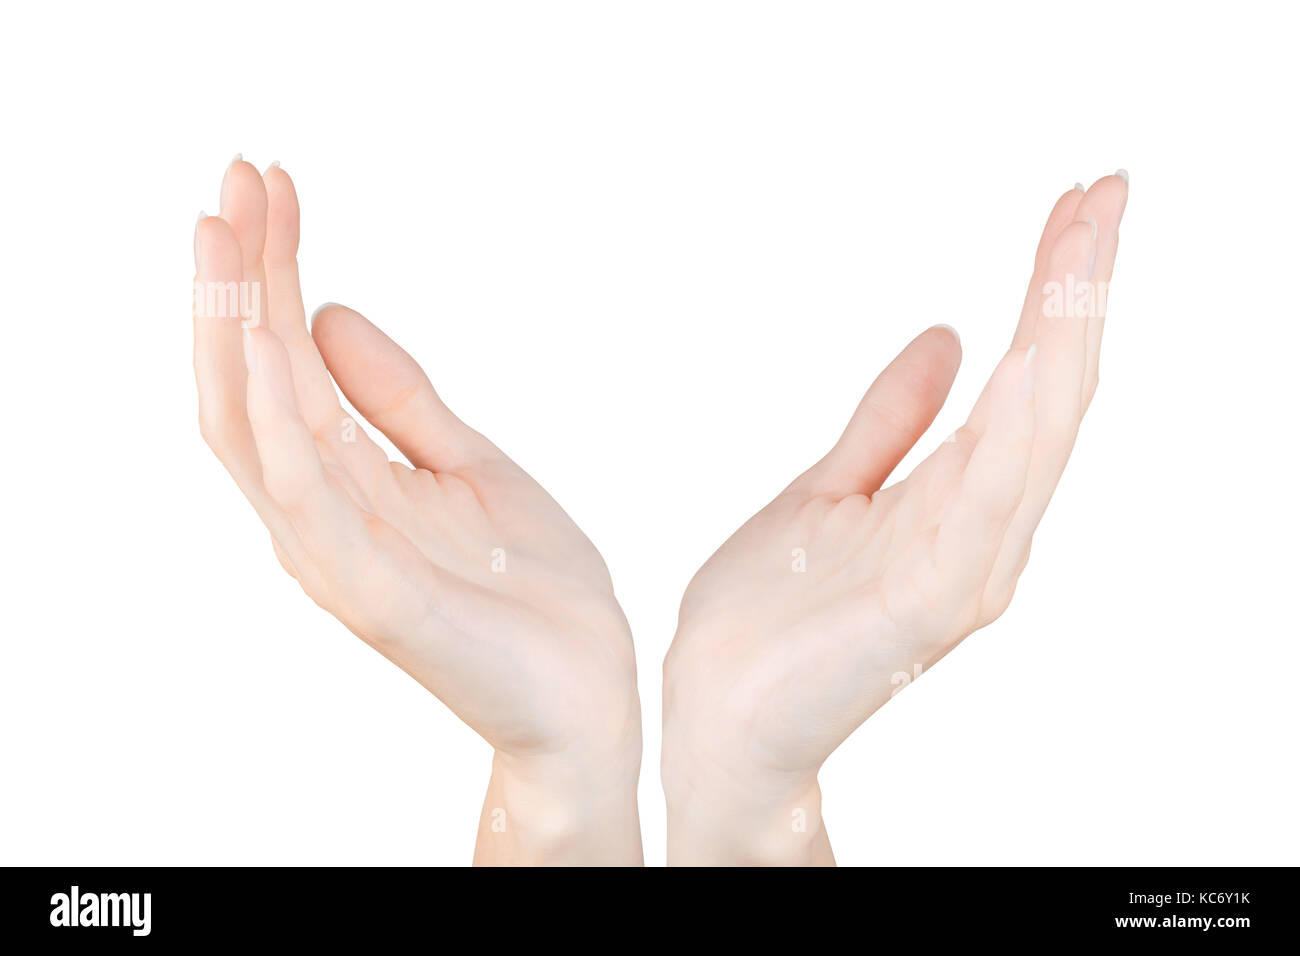 Two woman hands holding or protecting something. Isolated on white, clipping path included - Stock Image